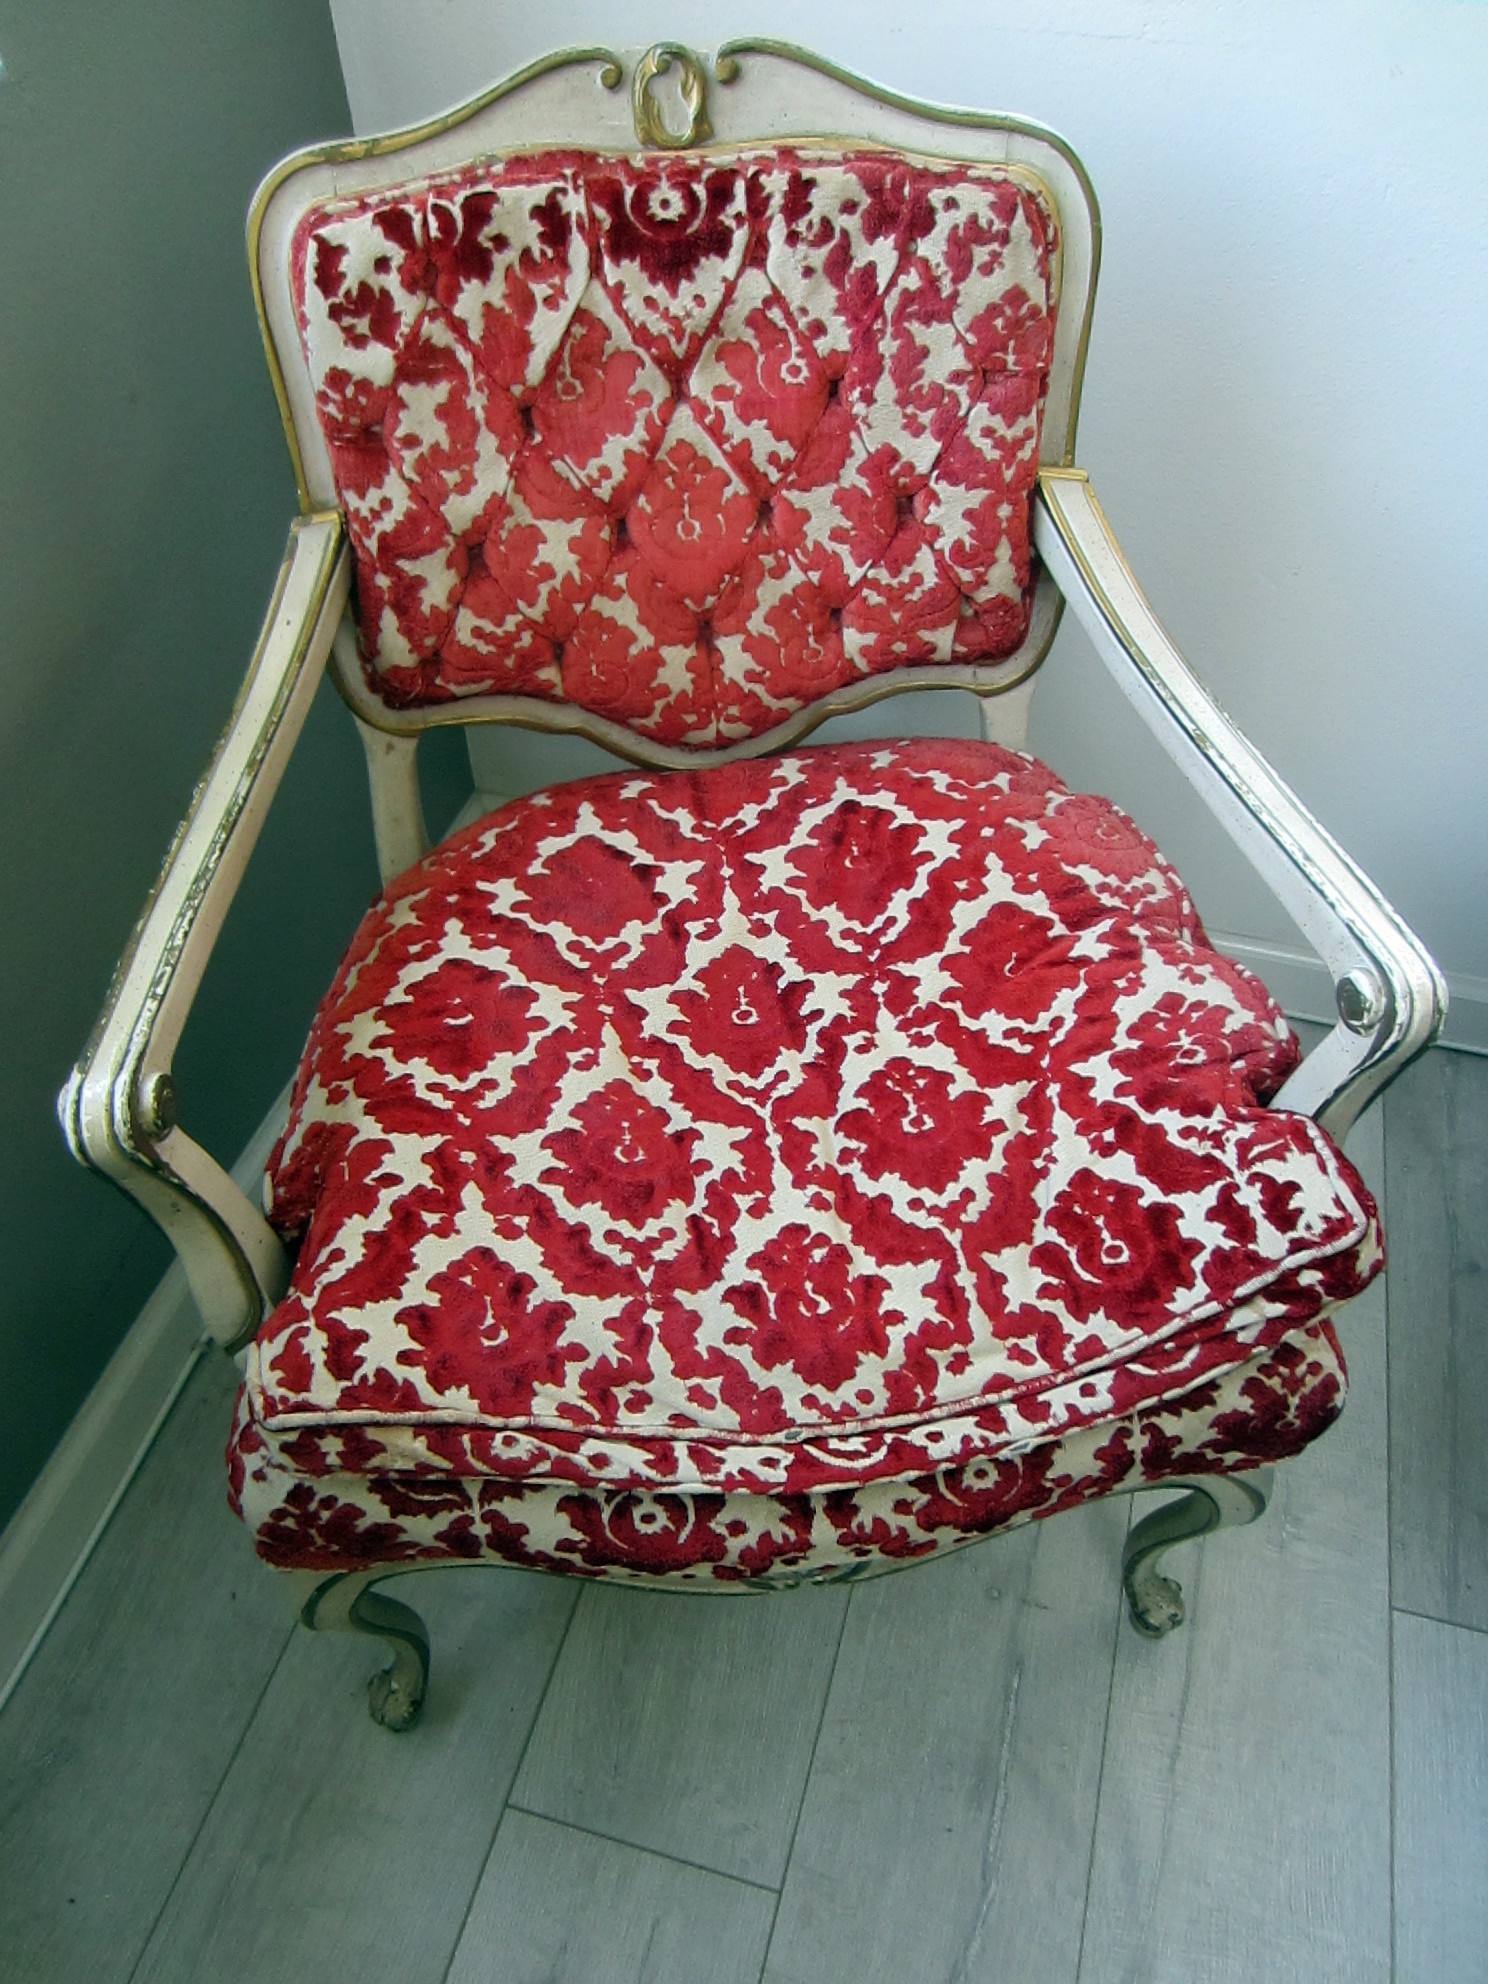 floral arm chair stokke high cushion install french hibriten red textile white gold